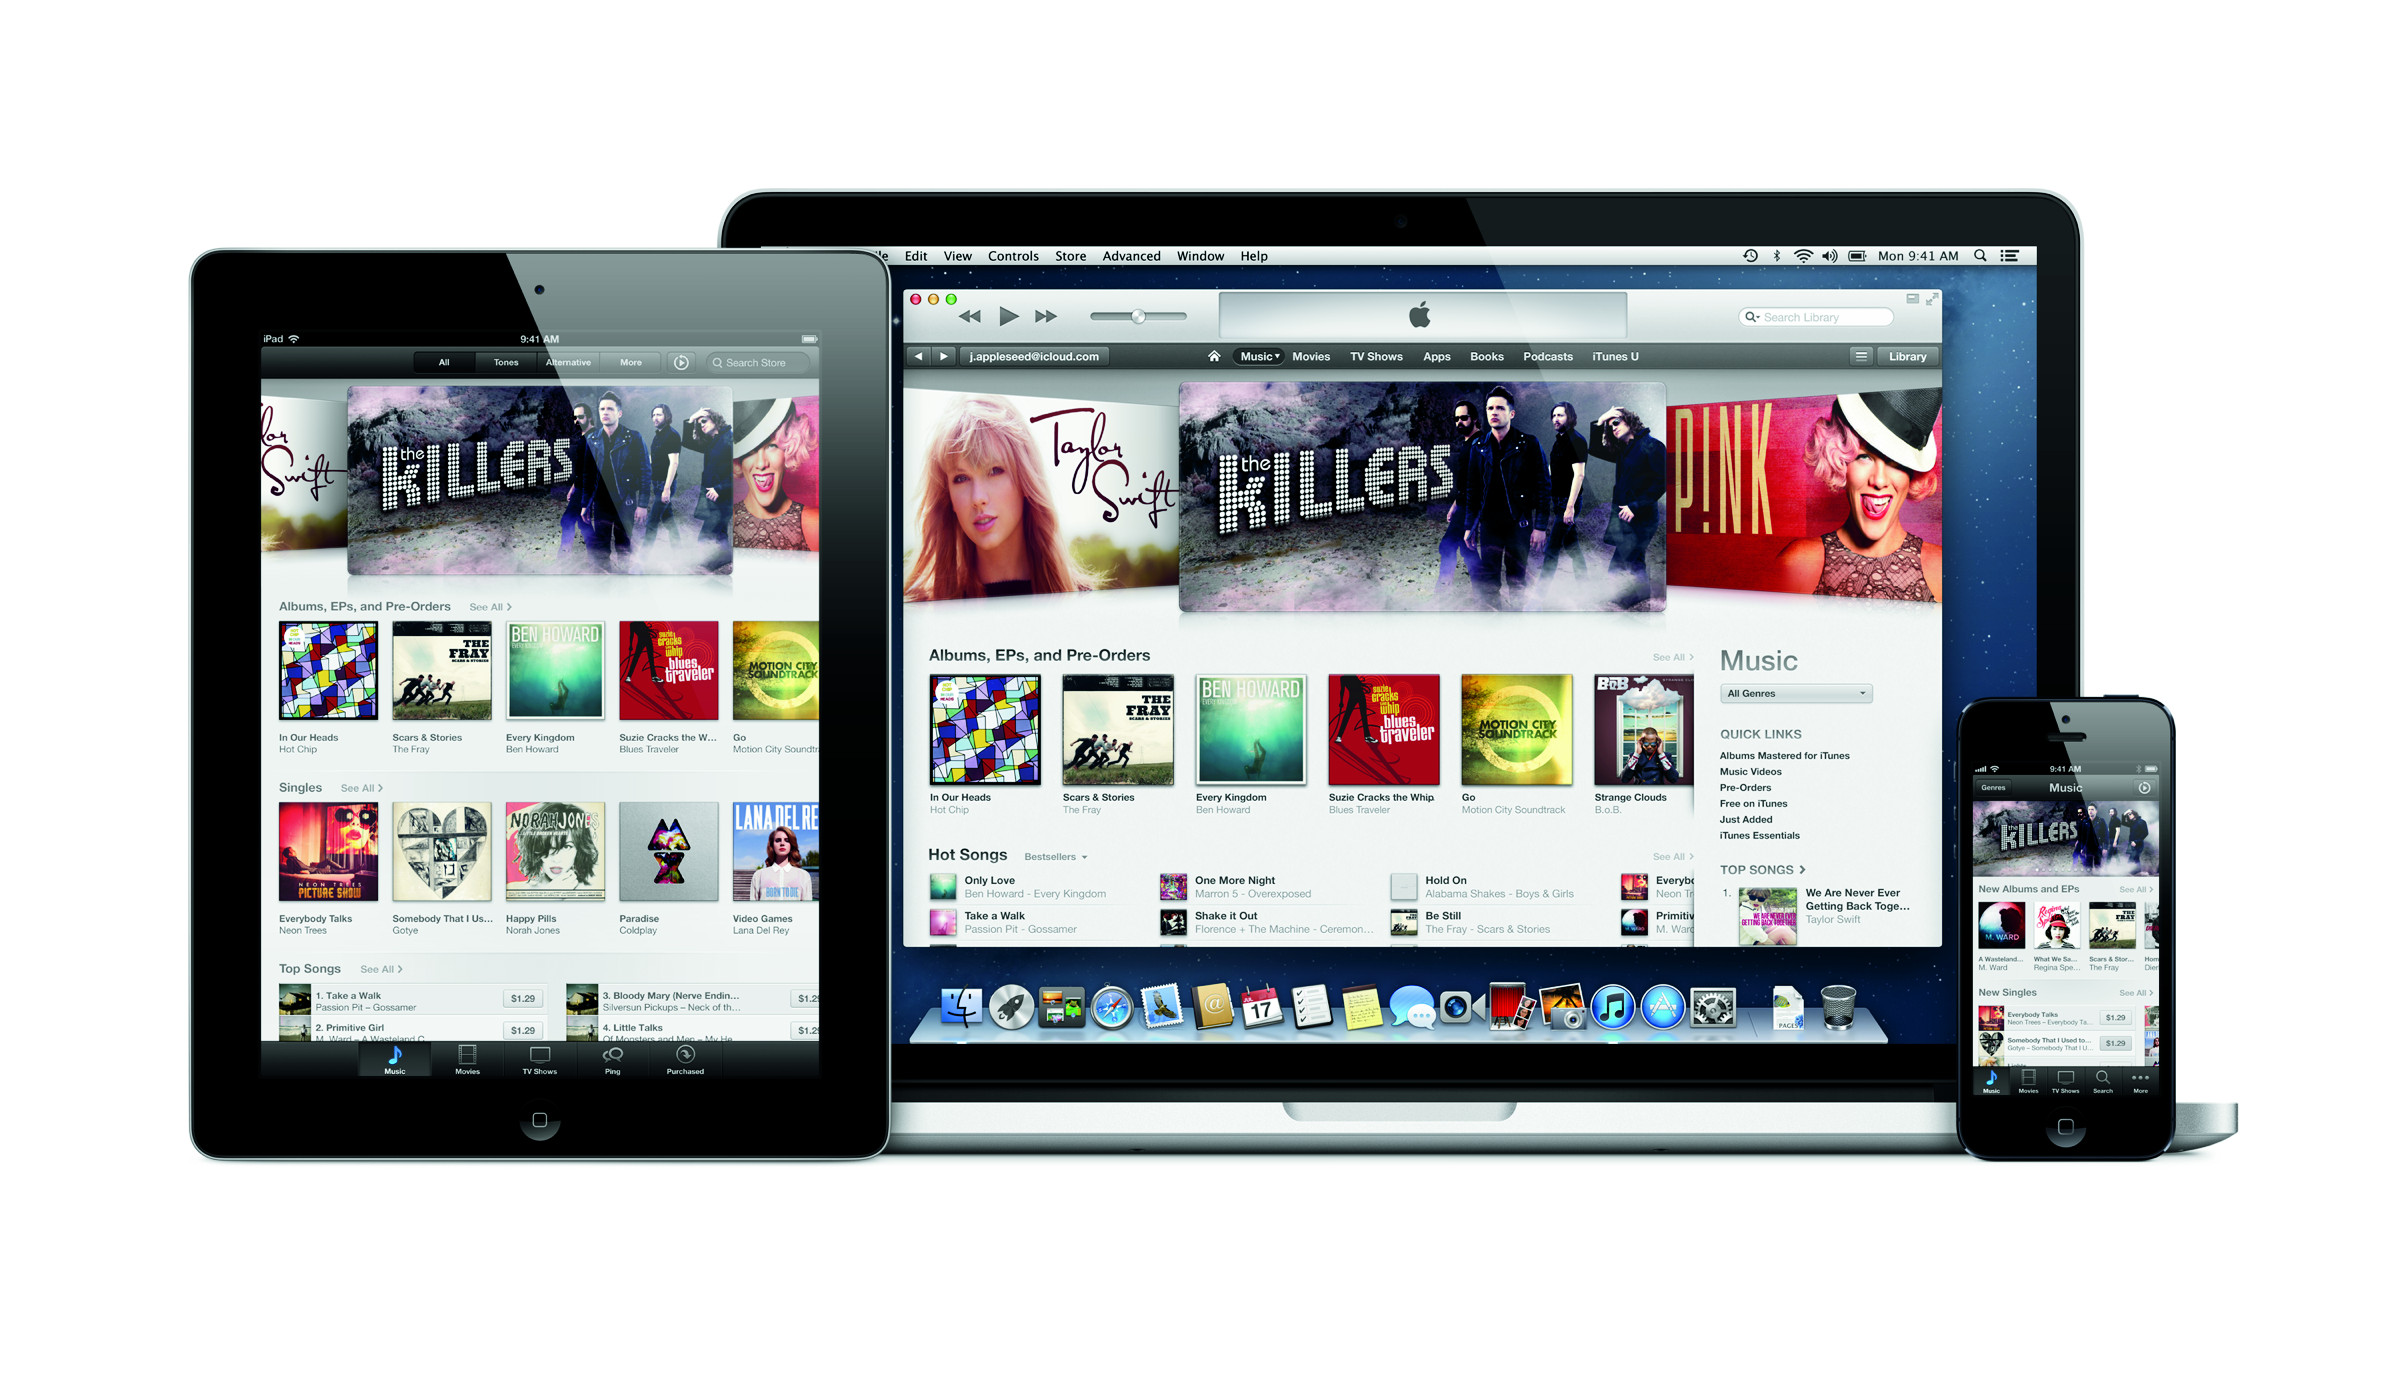 iTunes Store - iPad_MBP_iPhone